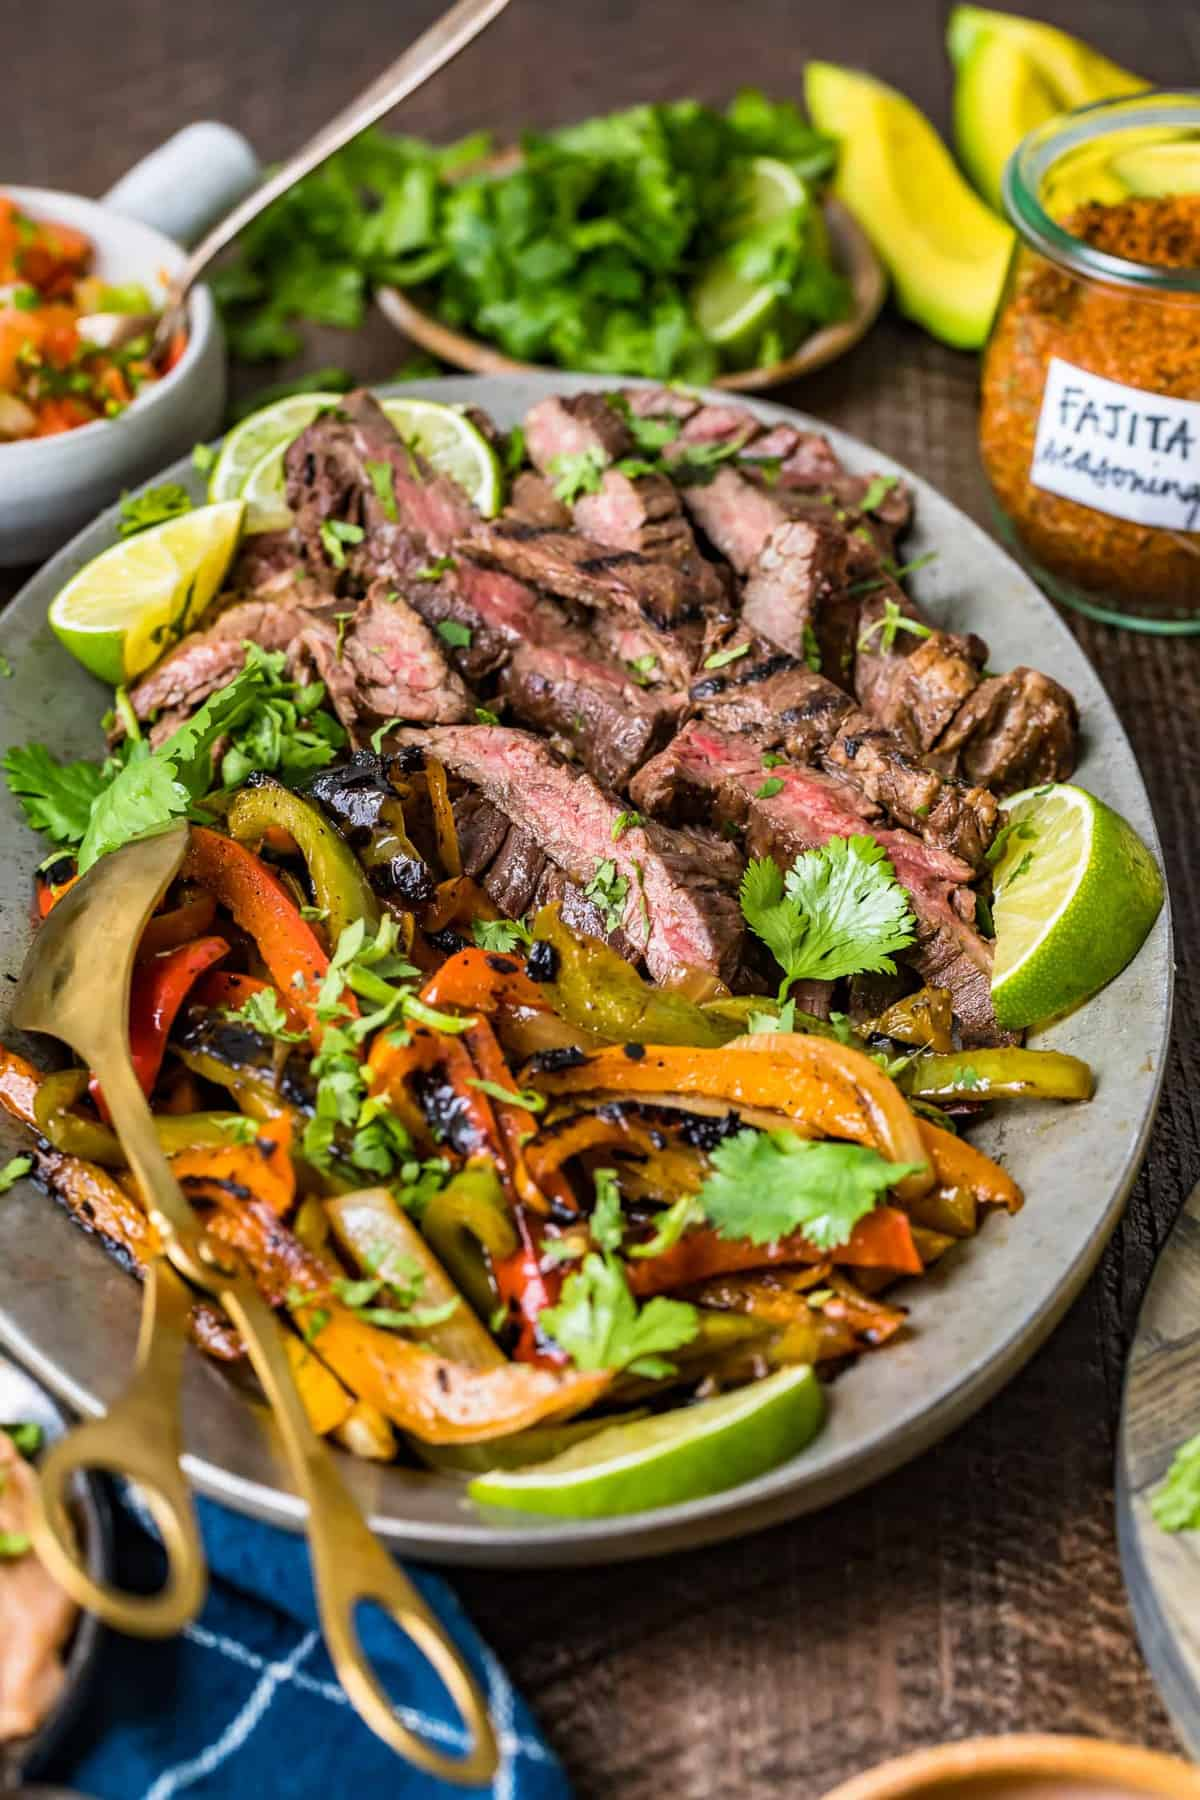 fajita steak and vegetables on a serving plate